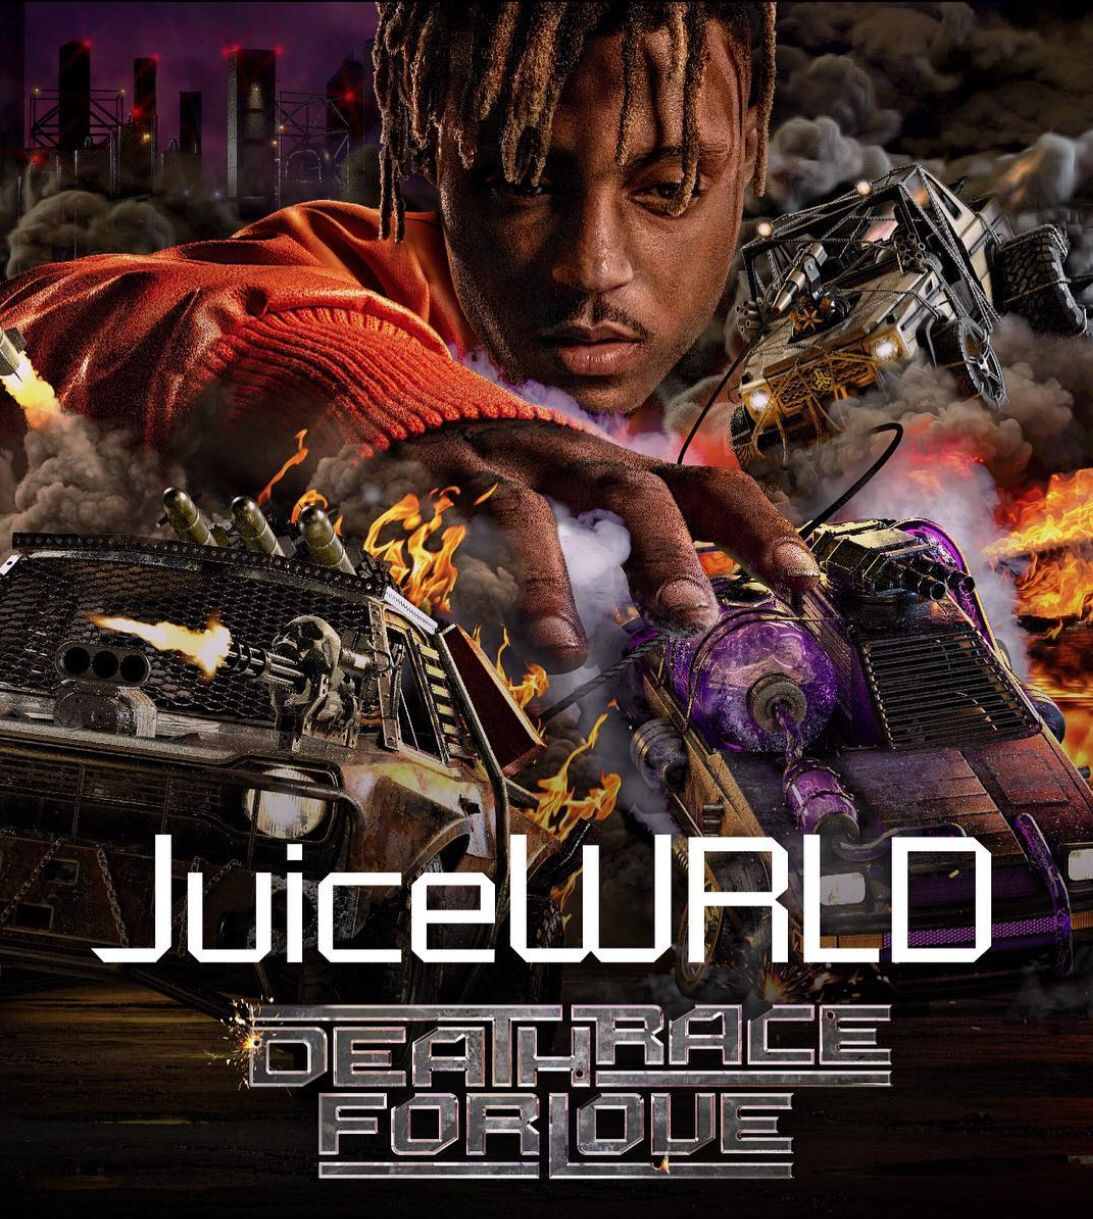 Pin by LunarPikaa on Juice Wrld (With images) Death race